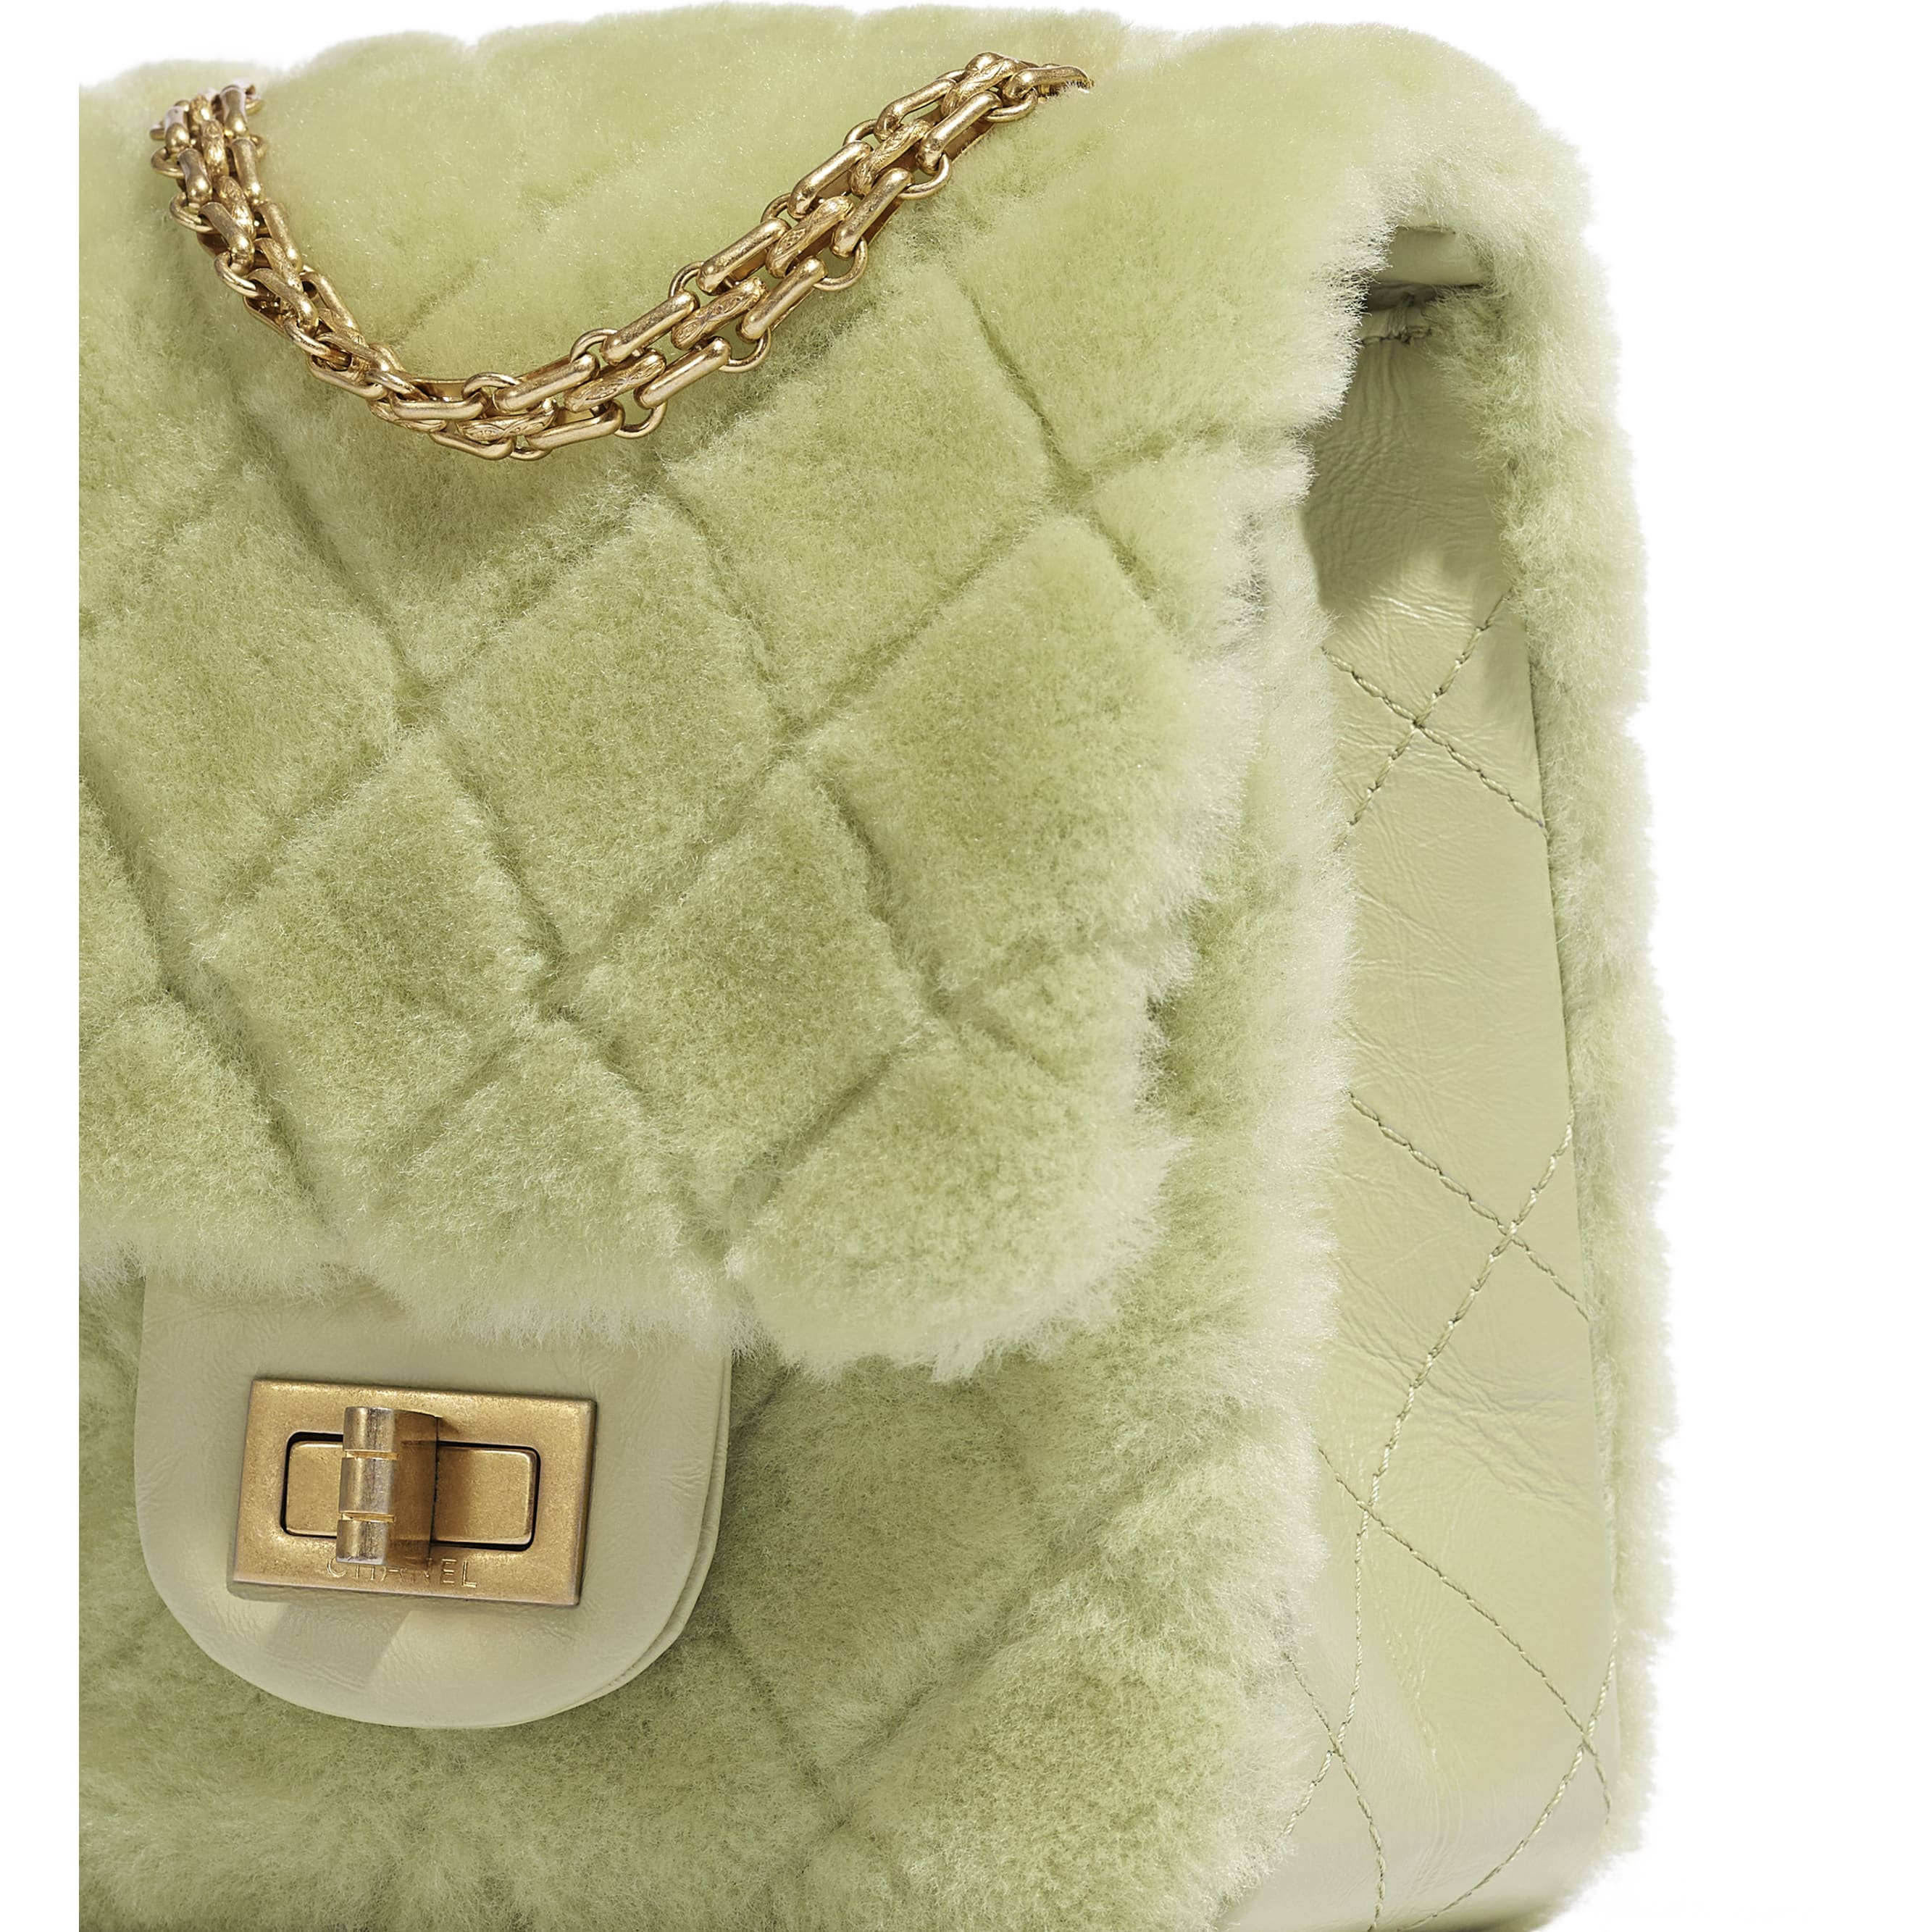 Mini 2.55 Handbag - Green - Shearling Lambskin, Aged Calfskin & Gold-Tone Metal - CHANEL - Extra view - see standard sized version